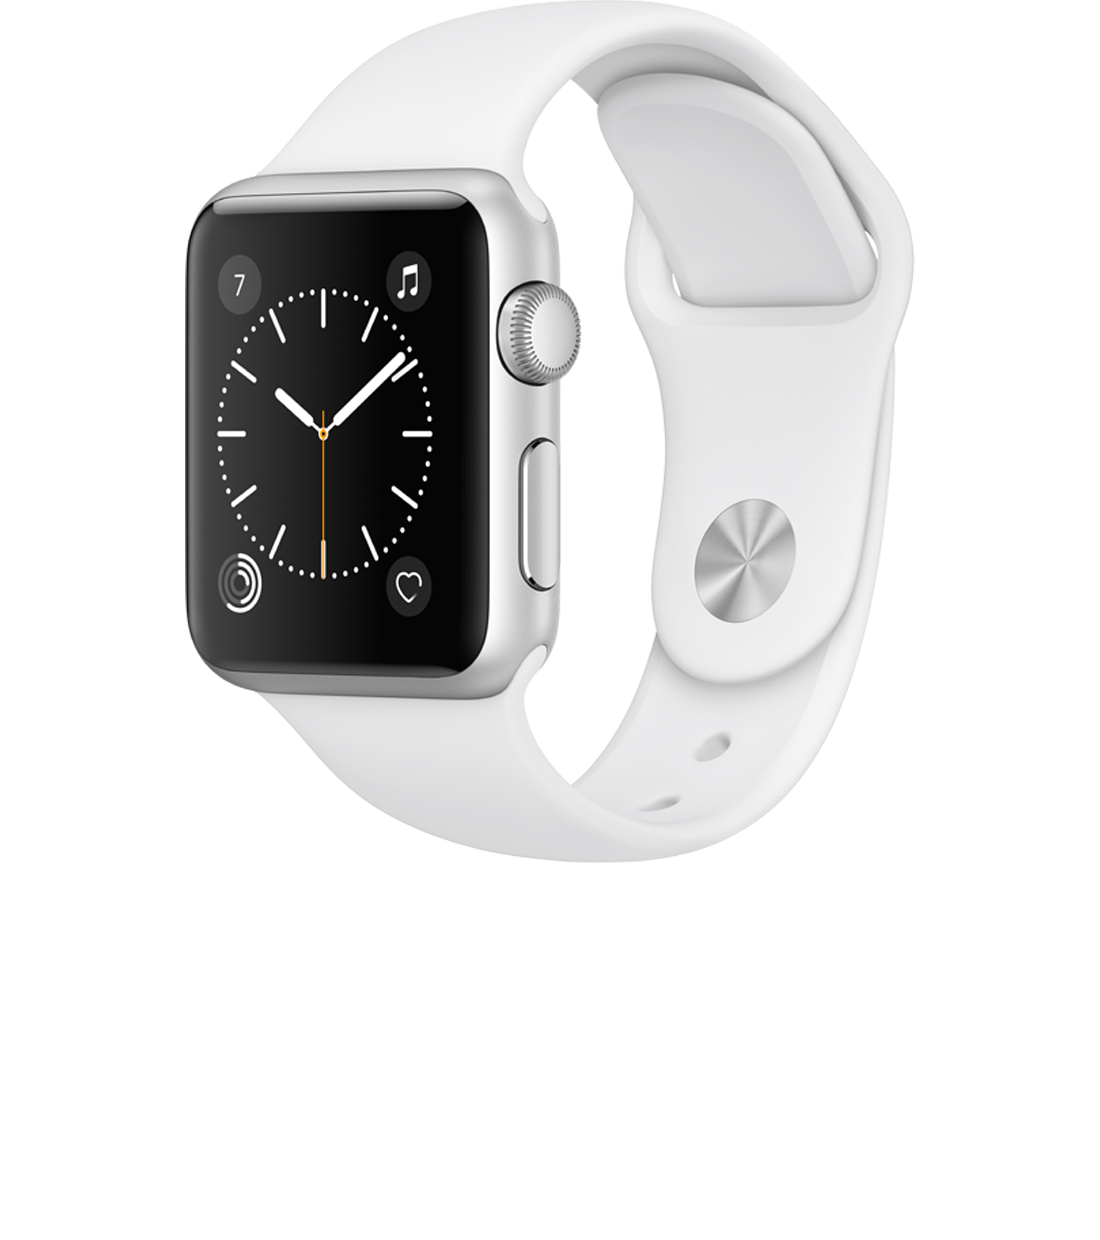 Apple Watch 38mm Silver Aluminum White Band